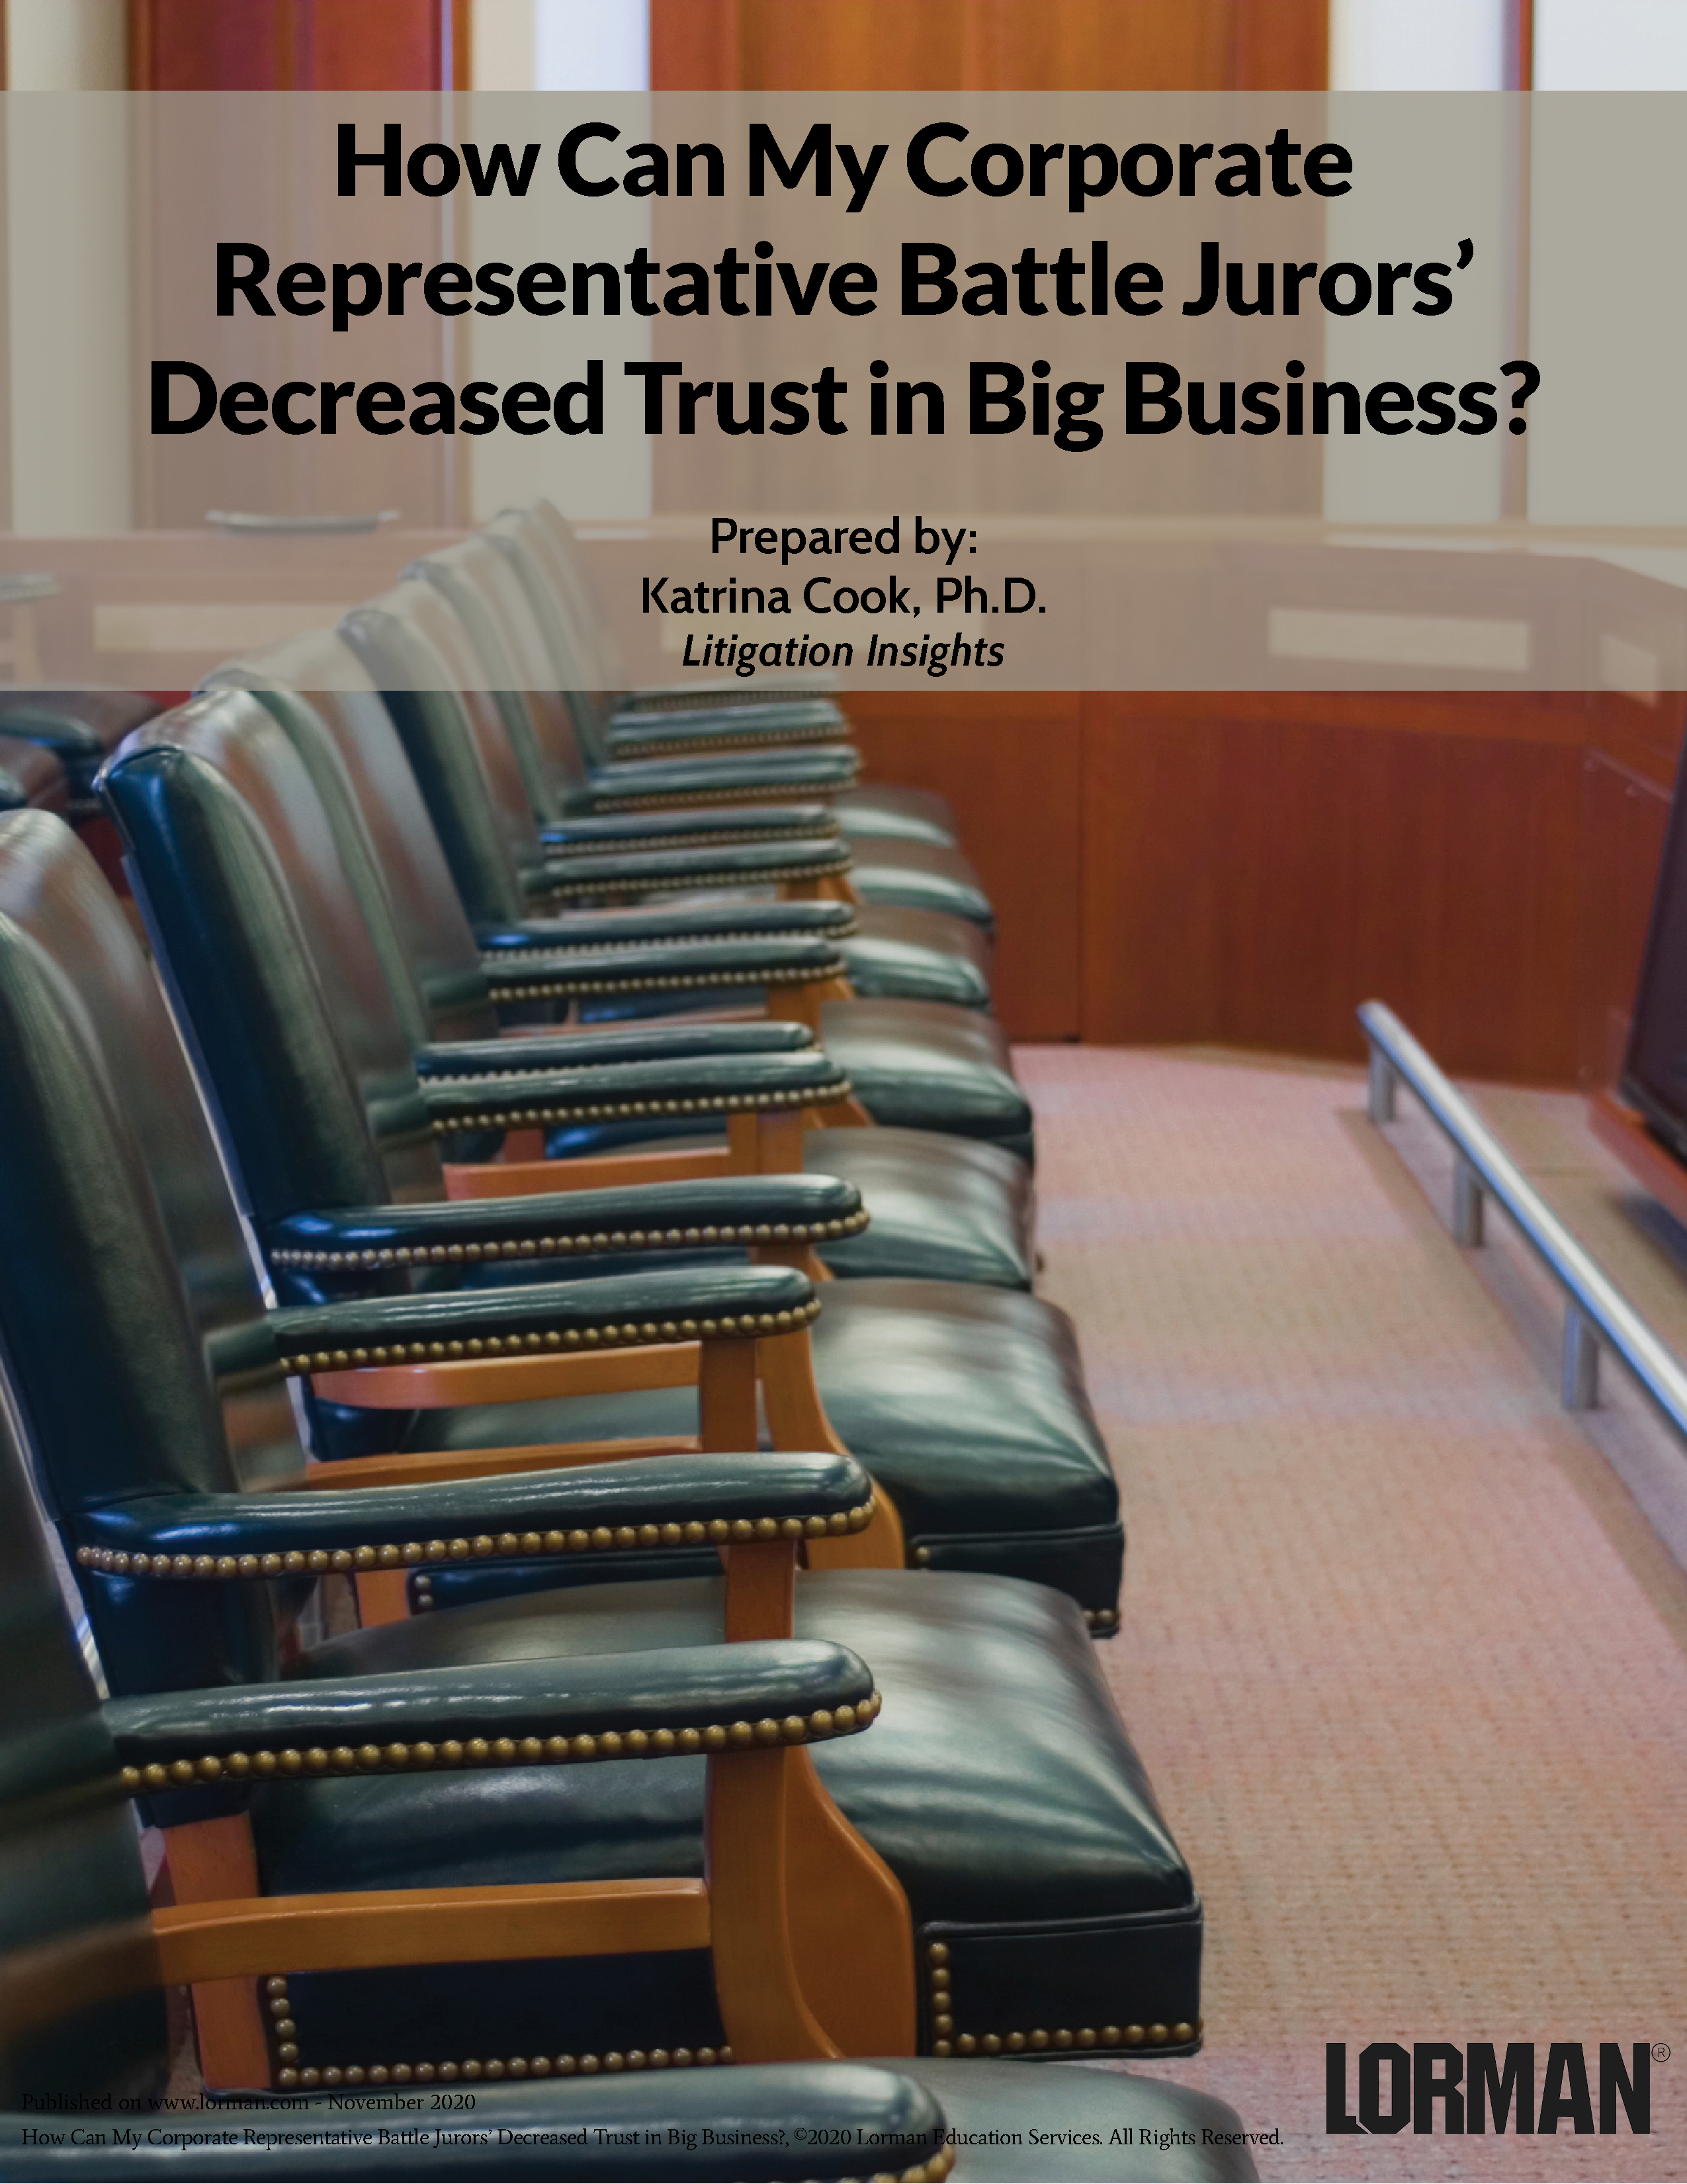 How Can My Corporate Representative Battle Jurors' Decreased Trust in Big Business?